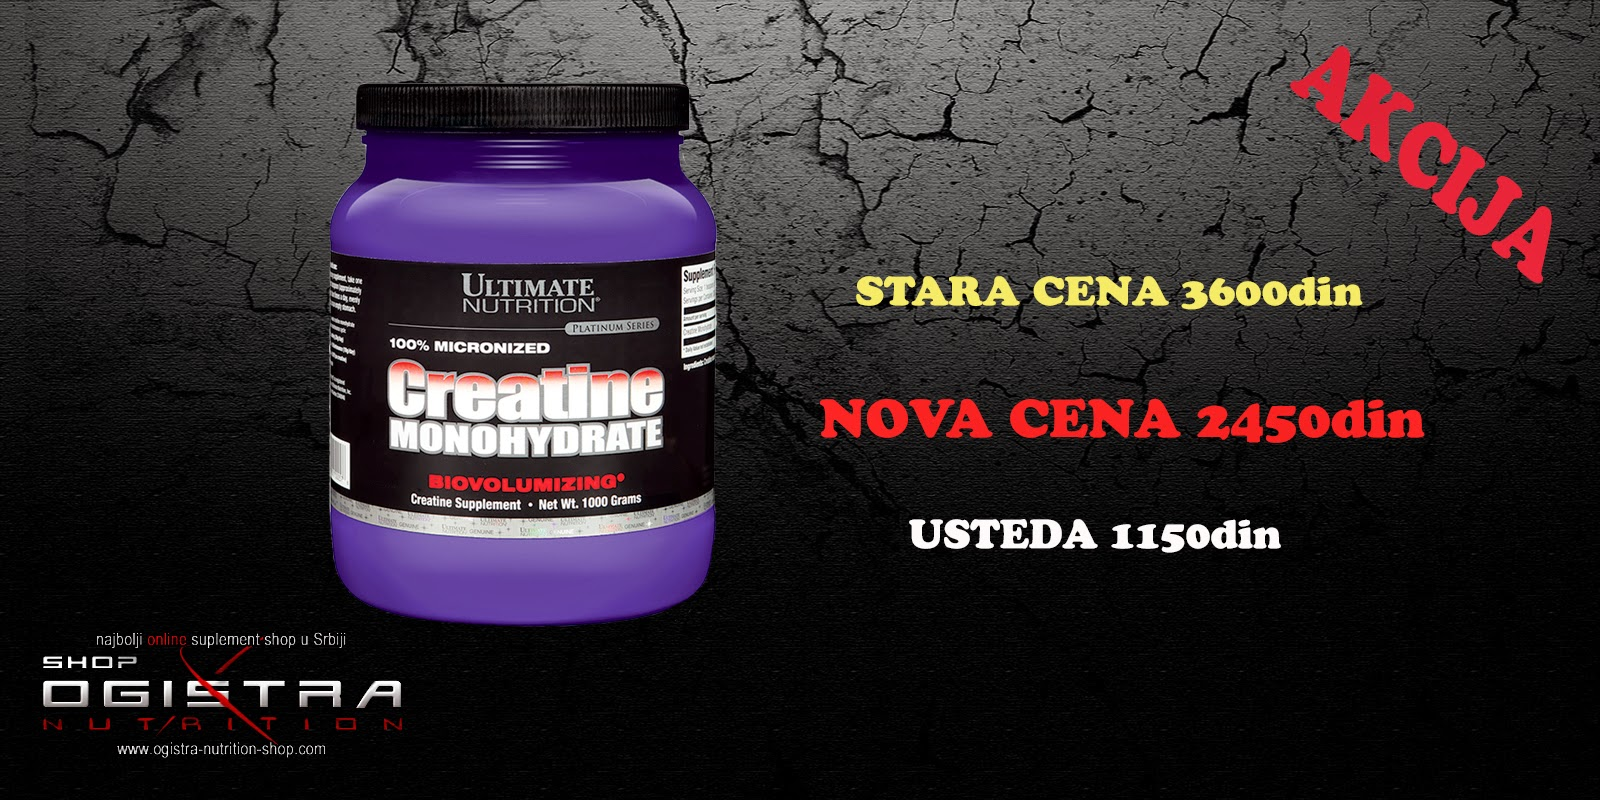 http://www.ogistra-nutrition-shop.com/index.php?dispatch=products.view&product_id=29954